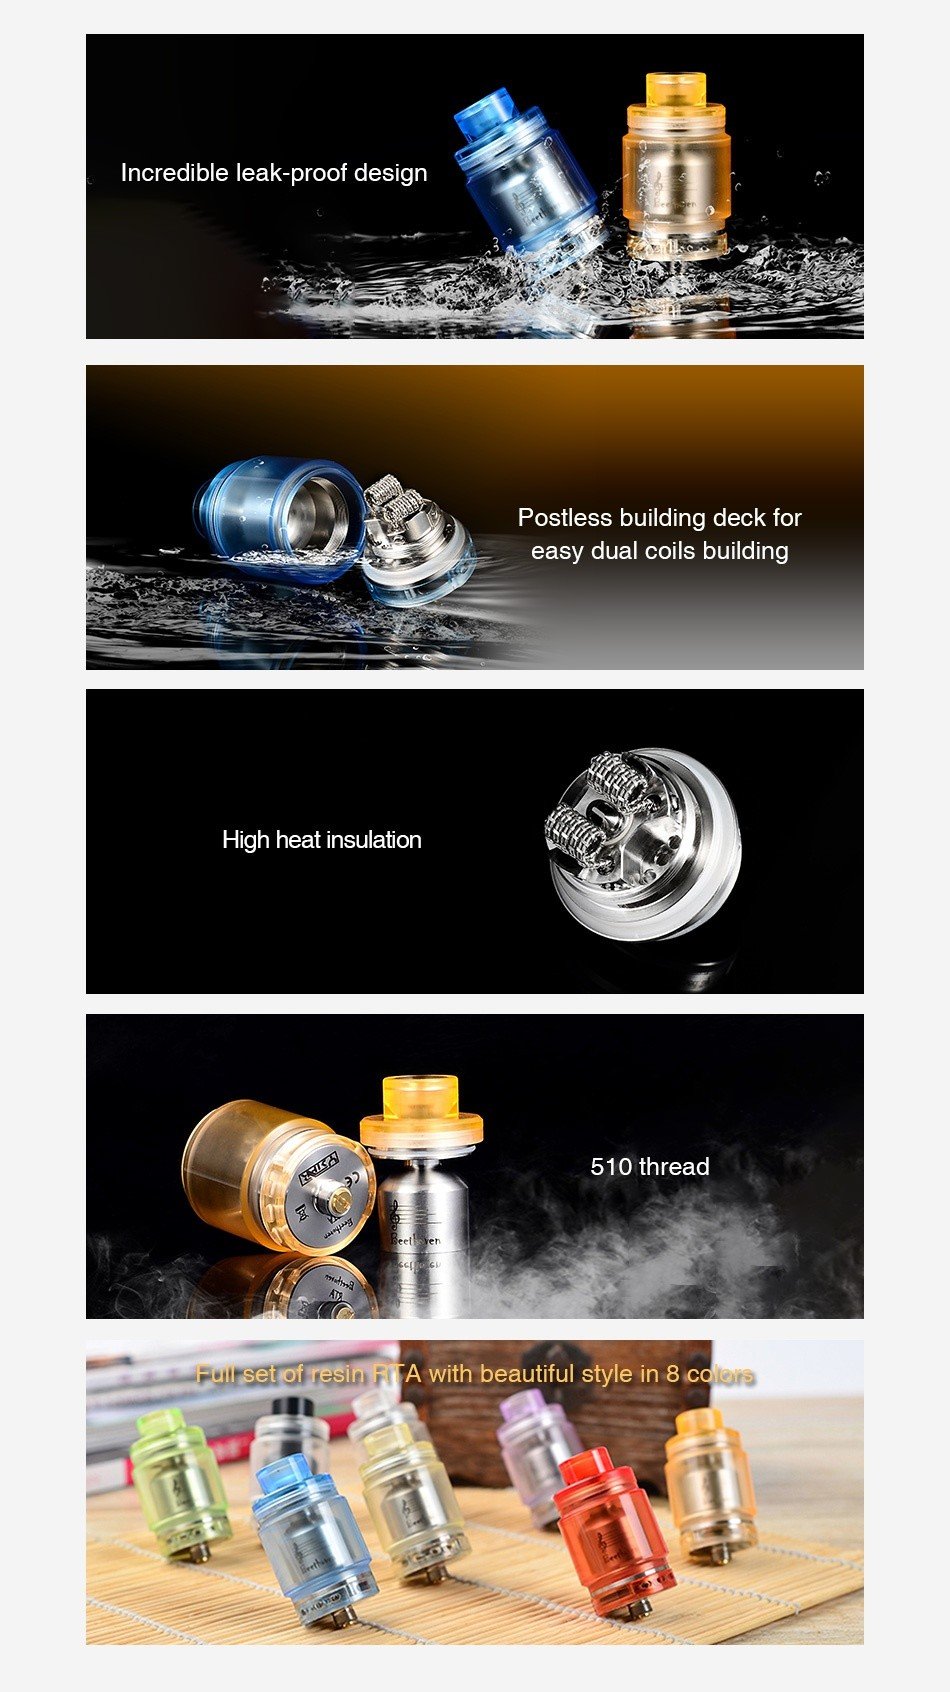 Ystar Beethoven RTA 5.5ml credible leak proof design Postless building deck for easy dual coils building High heat insulation 10 thread Puirsetof resin FifA with beautiful style in 8 cdos